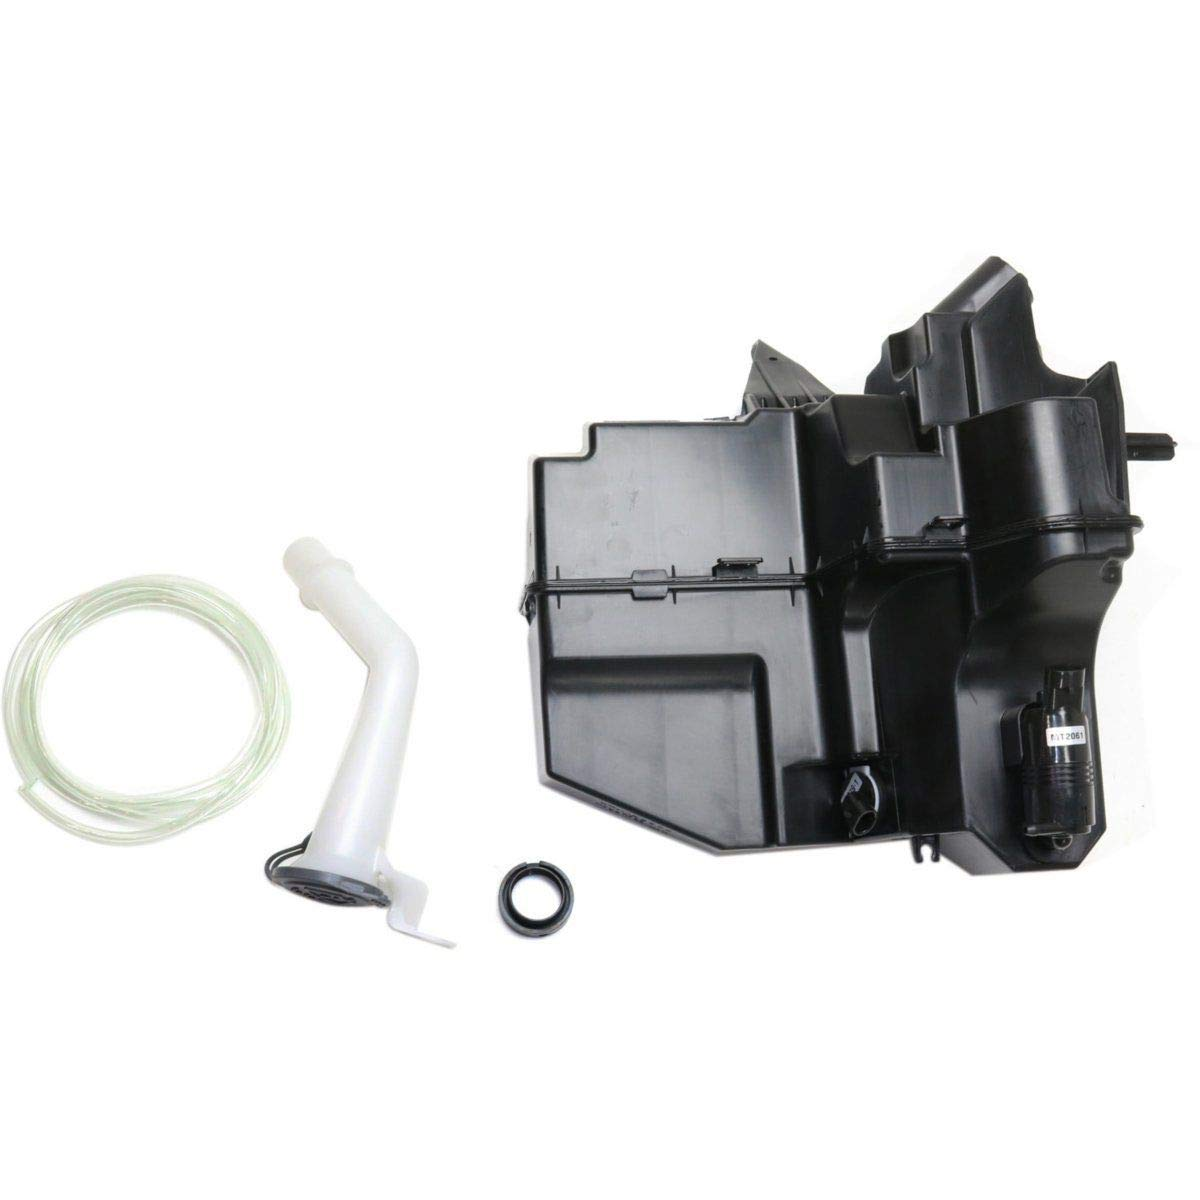 Washer Reservoir For 2013-2016 Nissan Altima With Pump by Parts Galaxy